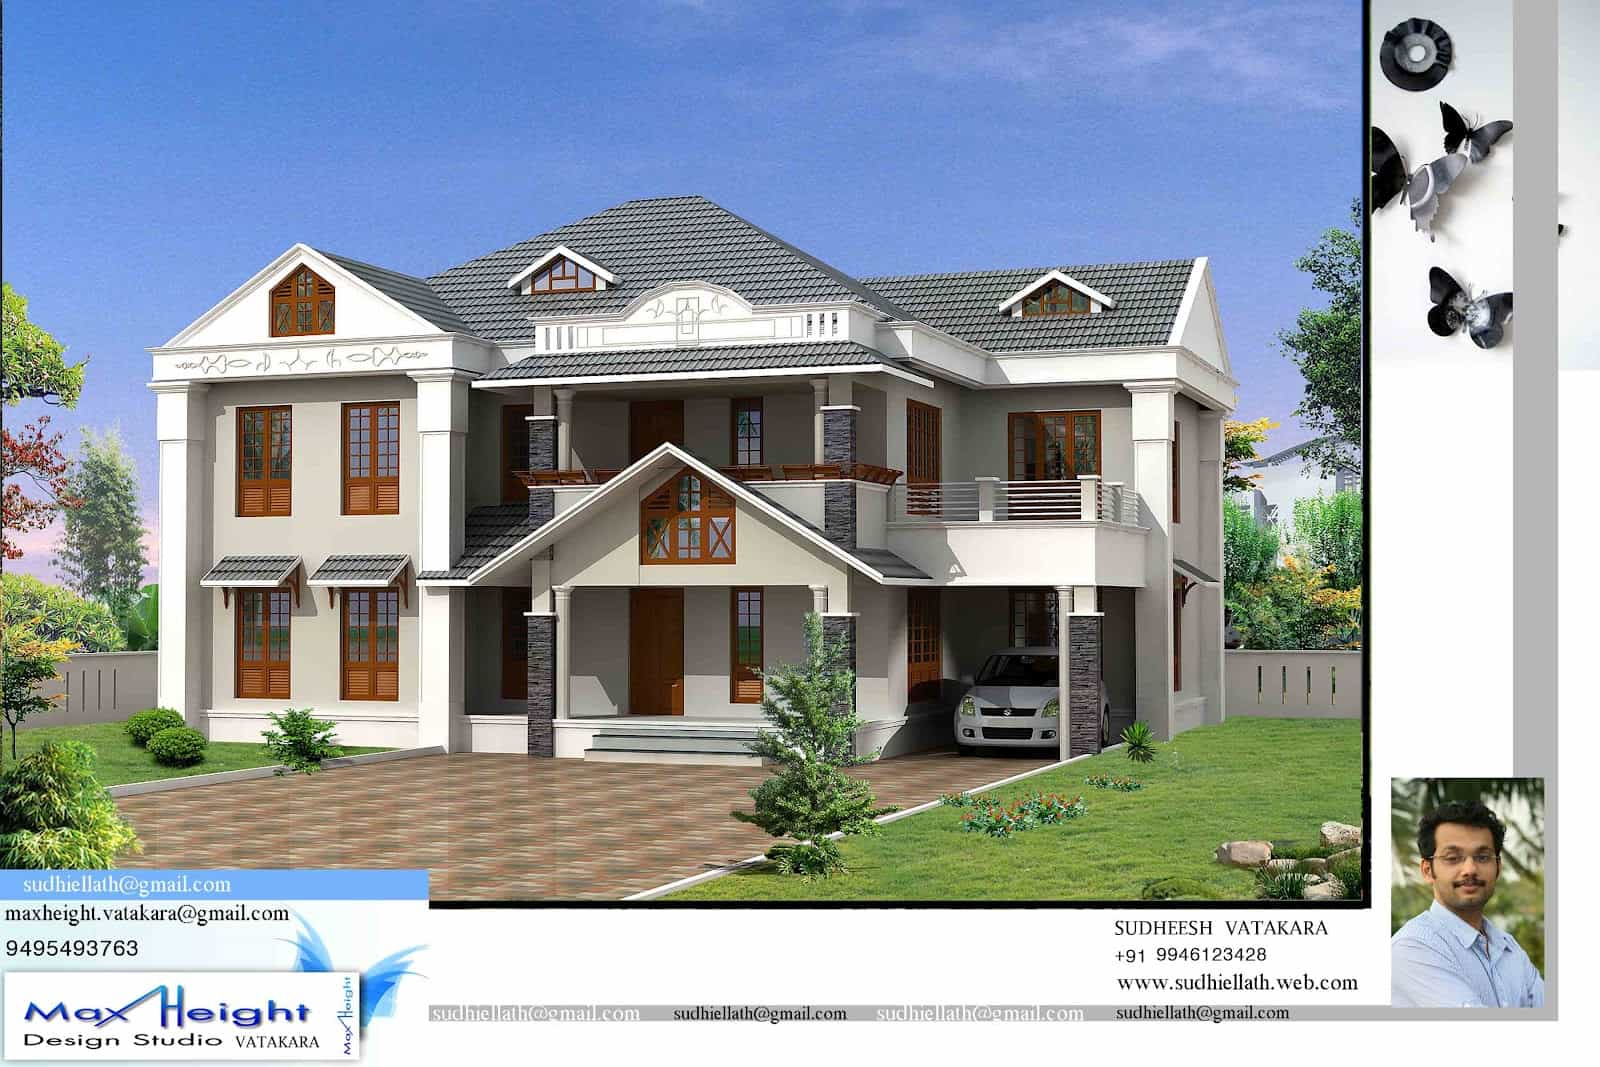 New model houses in kerala photos images Latest model houses